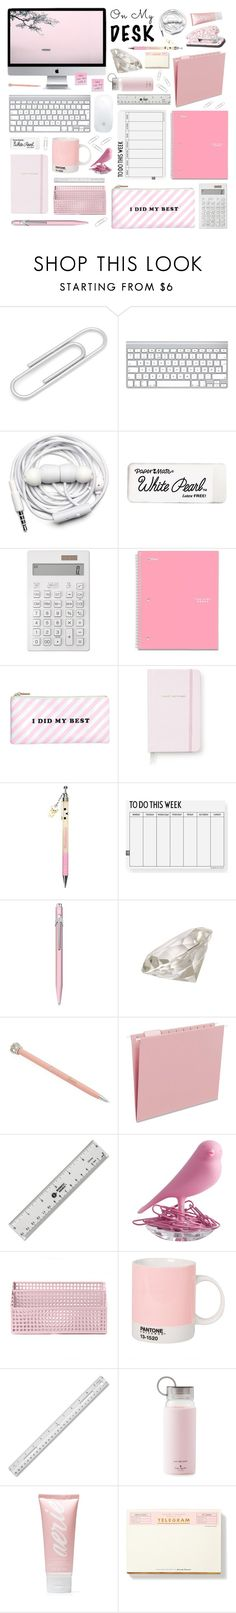 """""""On My Desk"""" by cara-mia-mon-cher on Polyvore featuring interior, interiors, interior design, home, home decor, interior decorating, Ox & Bull Trading Co., Urbanears, Paper Mate and Seed Design"""